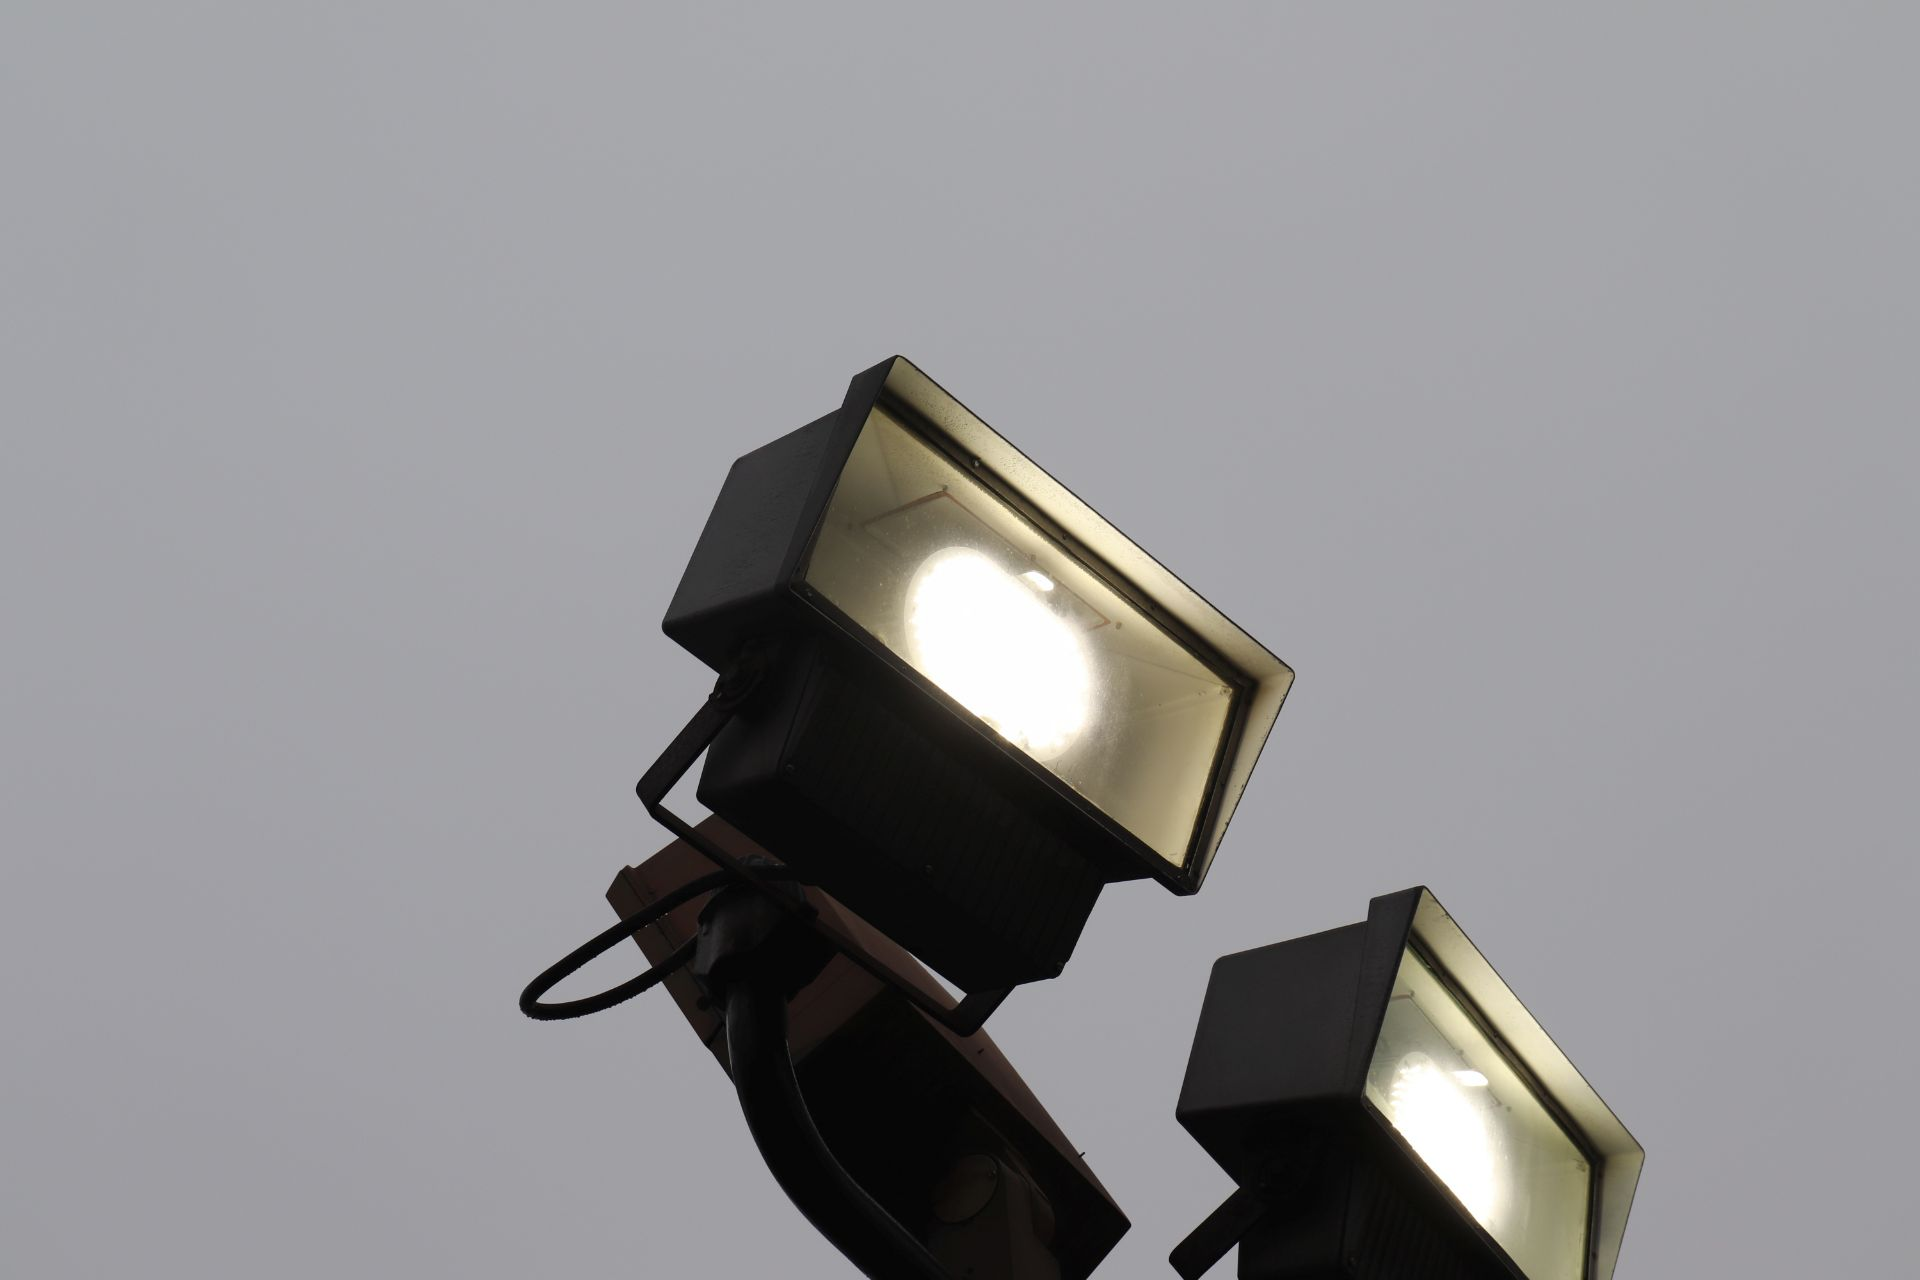 LED overhead sky light *will be taken down before the auction